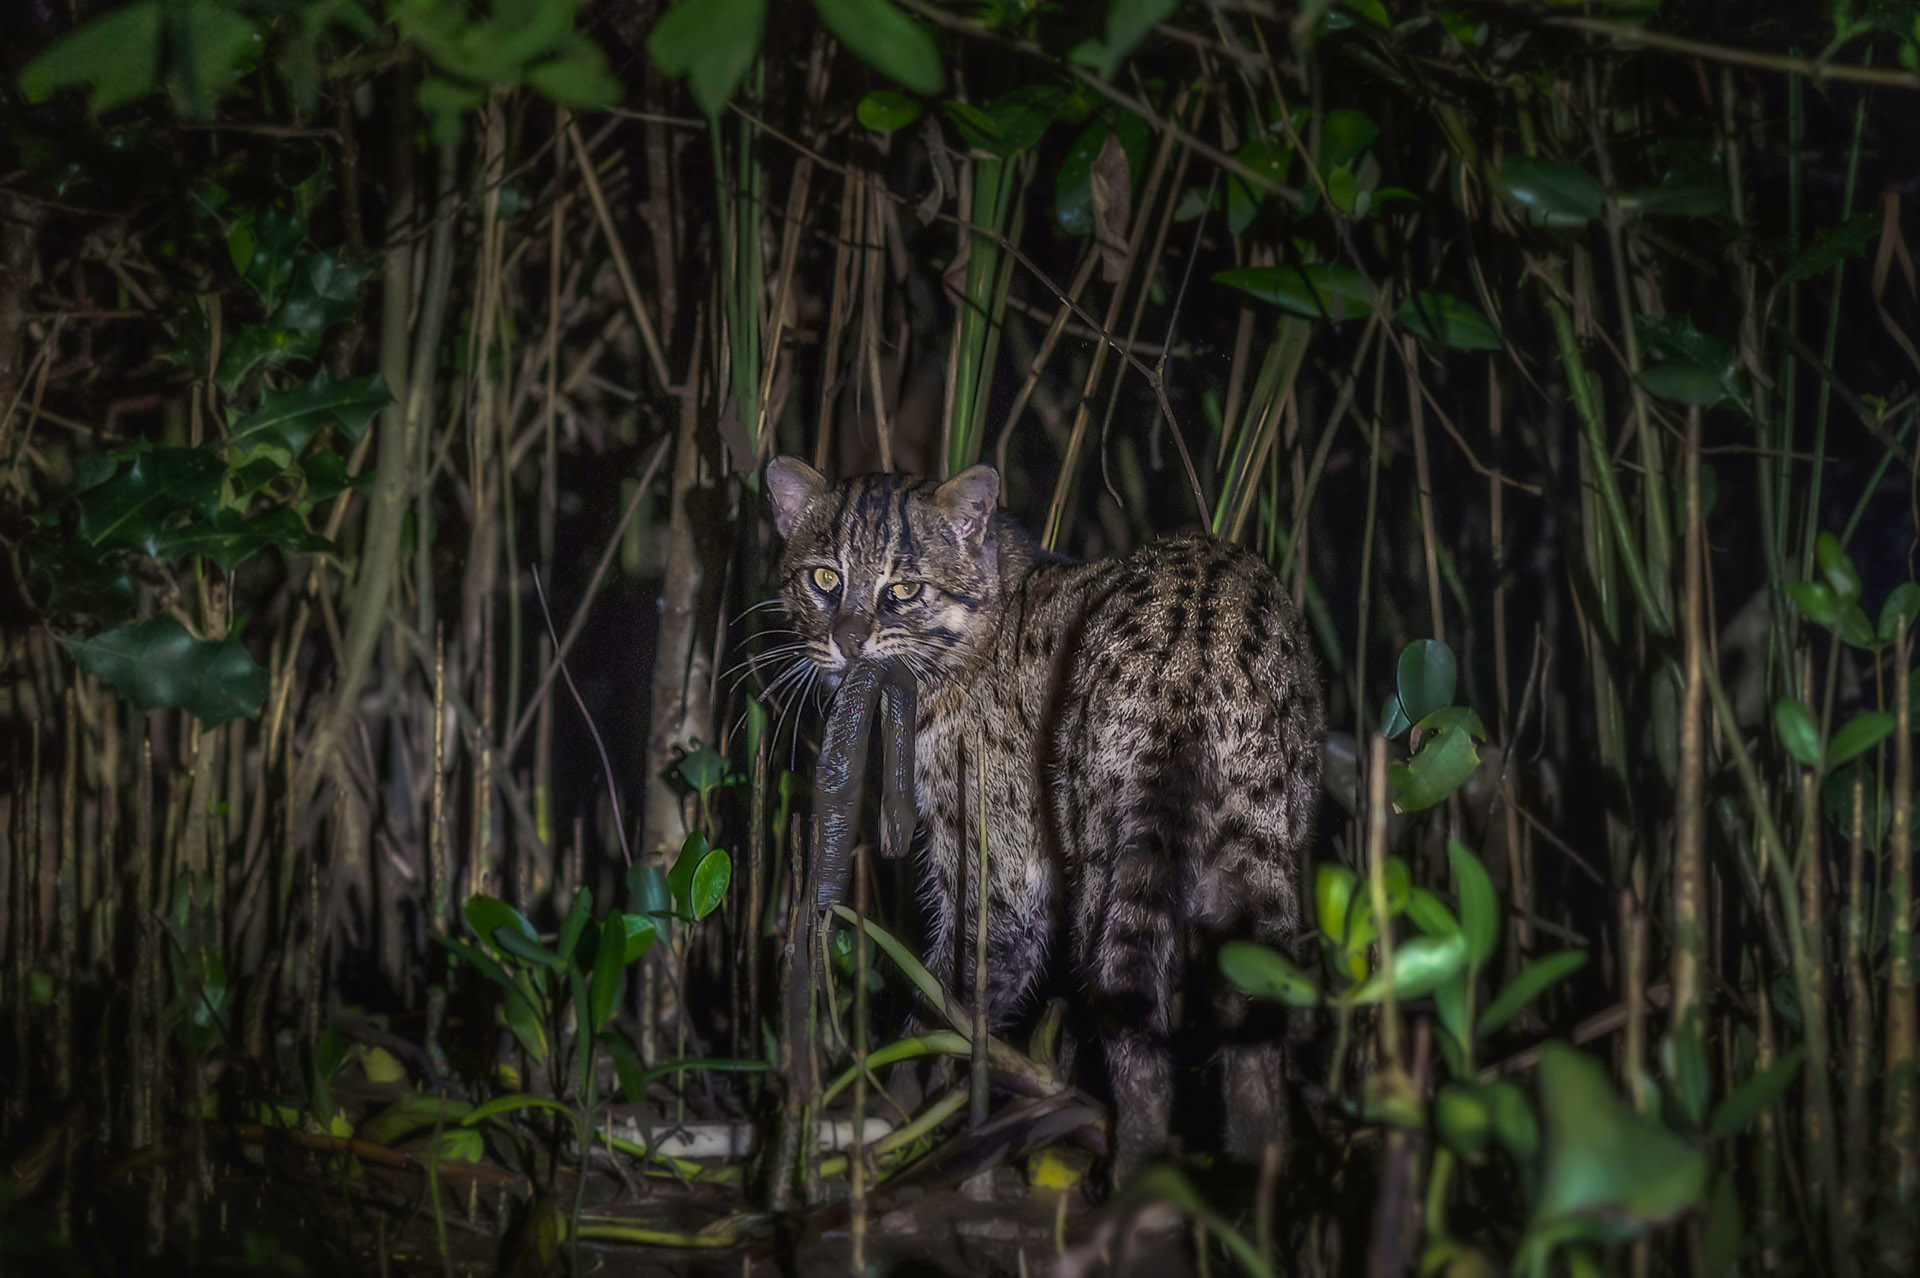 "Ironically, fishing cats take a long time to hunt. ""Yes, they can swim, but they are not underwater hunters,"" explains Mannepuri, who has observed cats waiting on the bank for two to three hours to catch a single fish. When they see suitable prey, the cats will pounce into the water. He also points out that they prefer to jump across a five-to-six-foot stretch of water rather than swim through it. Photo: Pallavi Laveti"